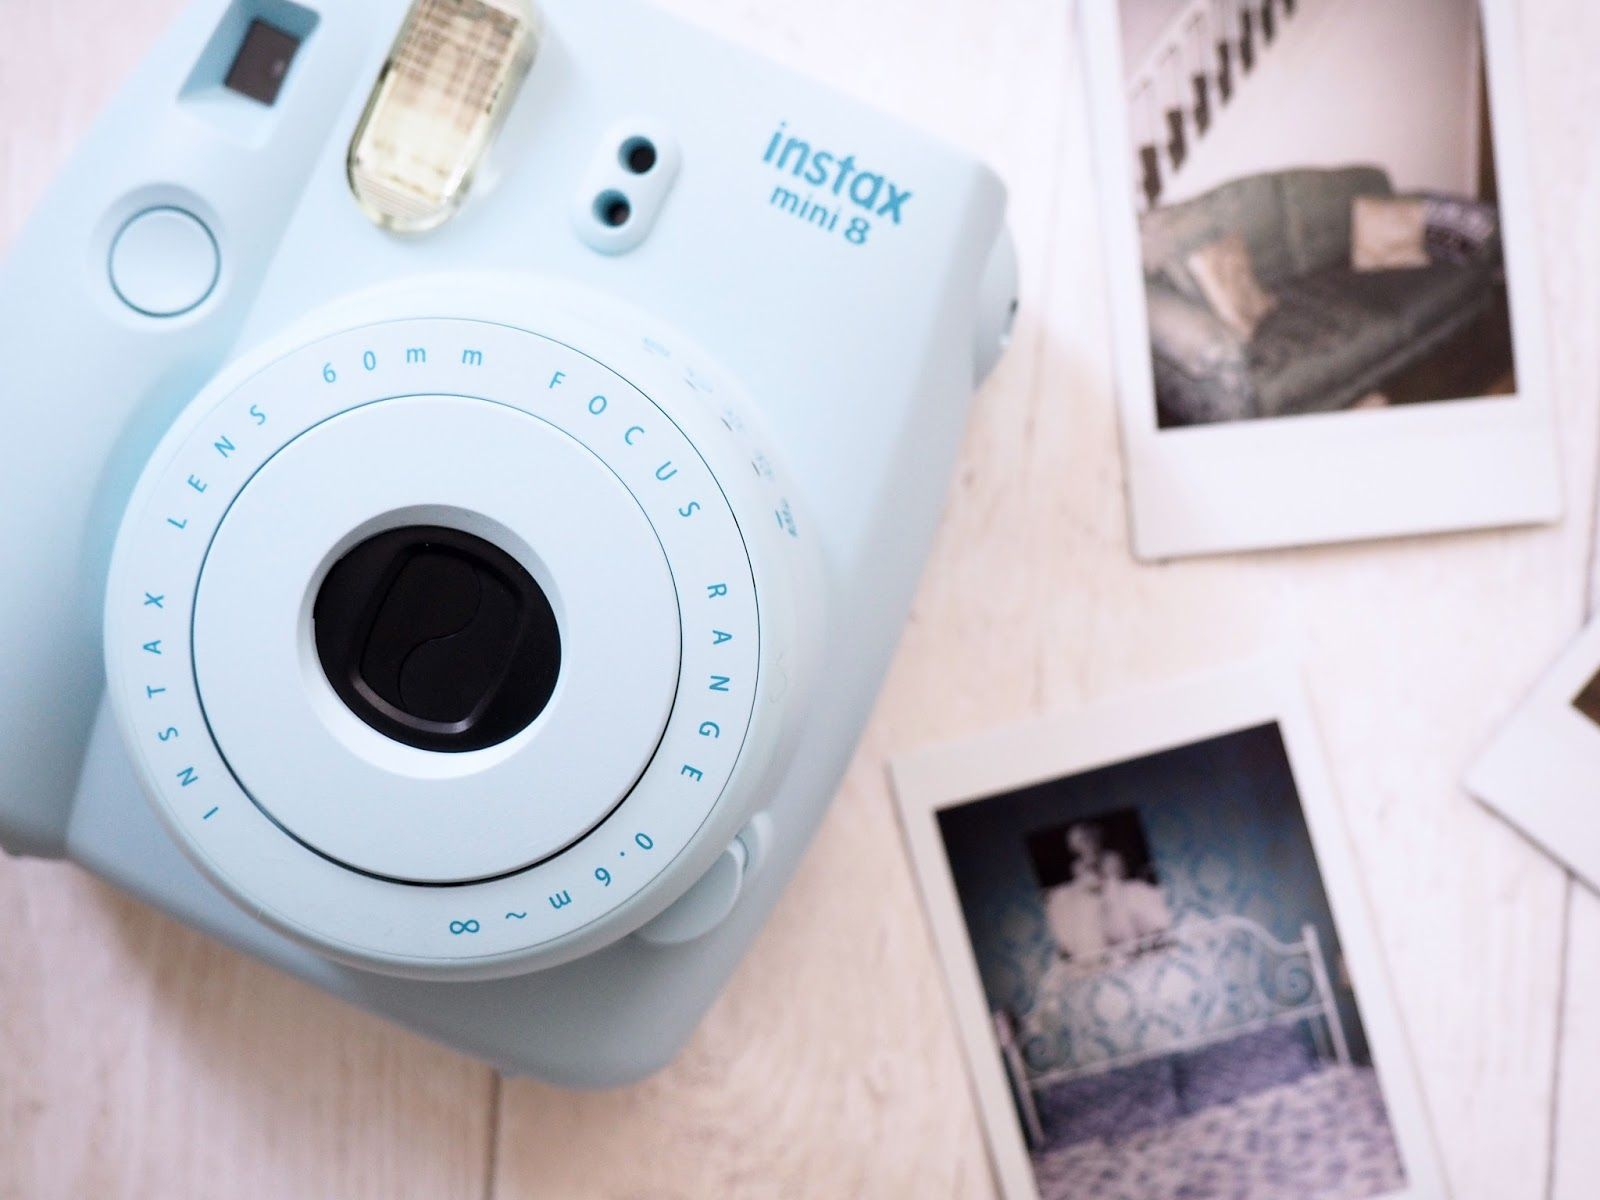 Polaroid Camera Urban Outfitters Uk : Instax mini 8 polaroid camera i need for christmas polaroid